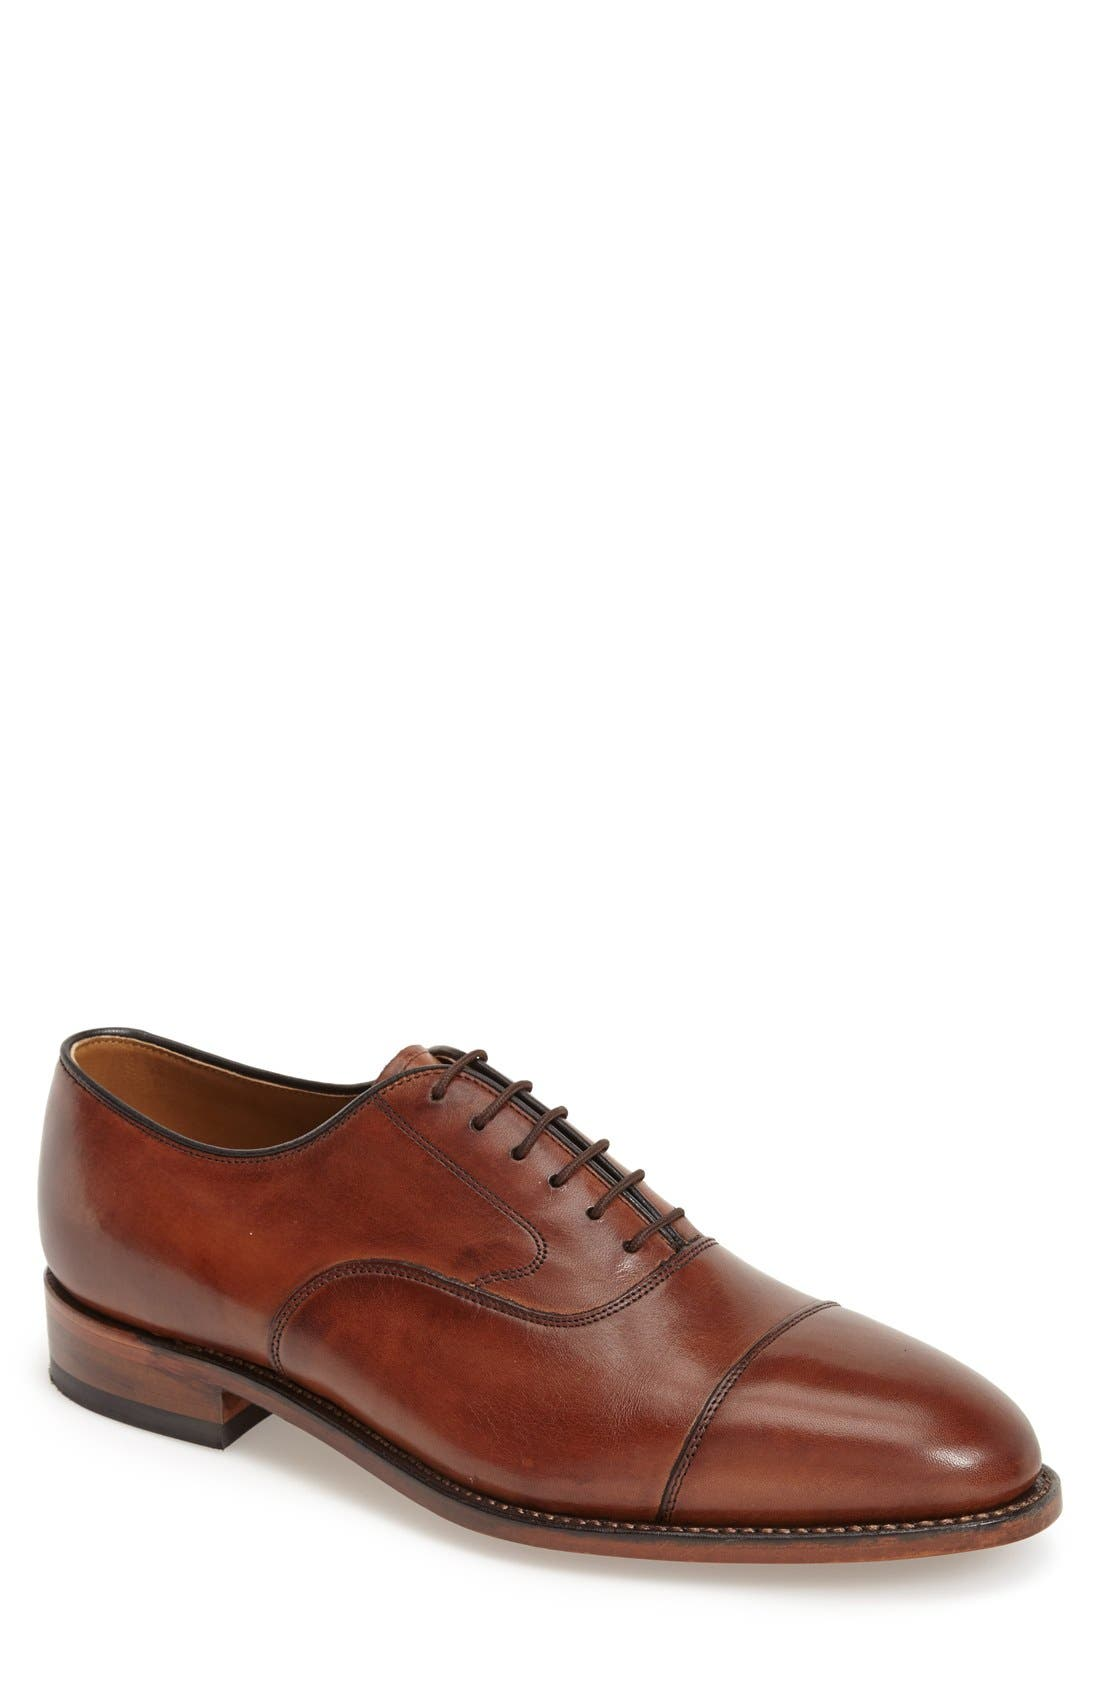 Alternate Image 1 Selected - Johnston & Murphy 'Melton' Oxford (Men)